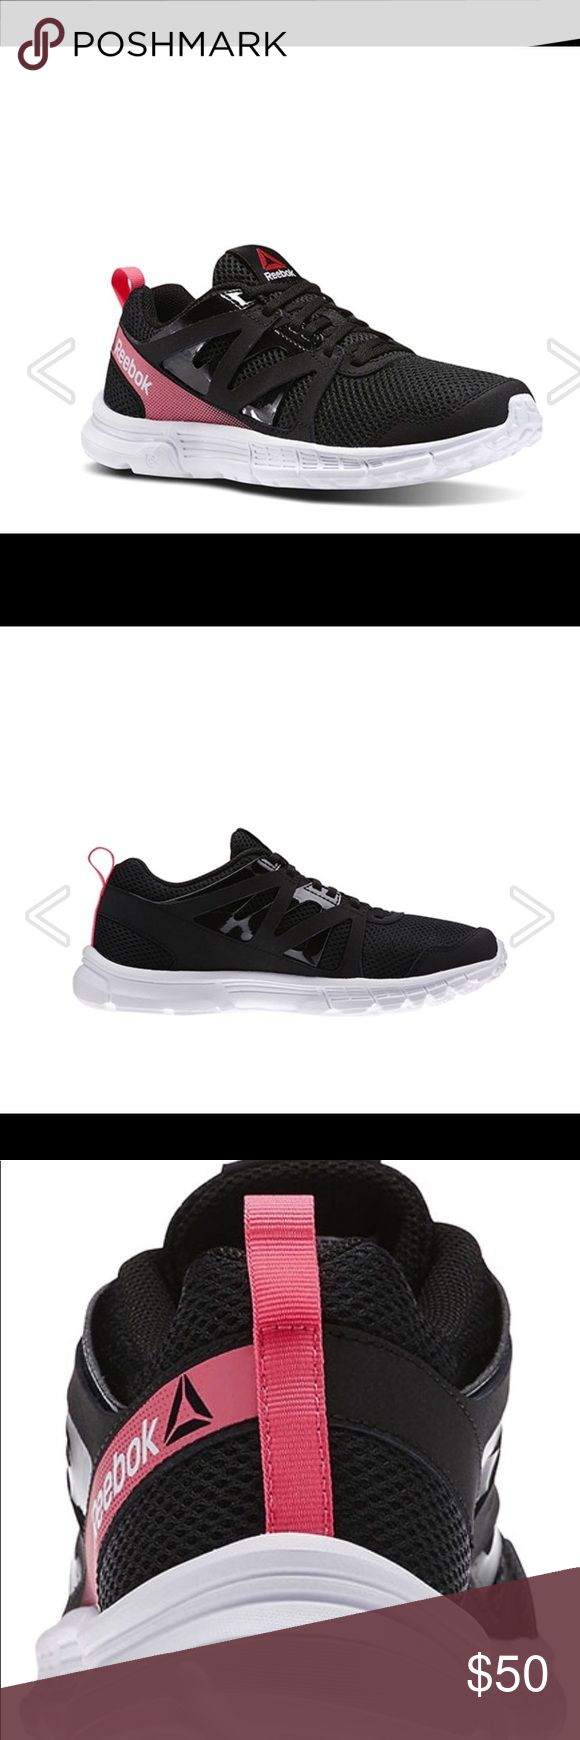 """Reebok women's run supreme athletic shoes blk/pin Low-cut, athletic silhouette Breathable sandwich mesh upper with quarter straps for light support Lace-up vamp Back heel pull tab Stretchable mesh lining MemoryTech massage insoles molded for optimal support Rubber compound in heel and forefoot for traction 3D UltraLite foam soles with forefoot flex grooves for flexibility. Heel height 1"""". Color: black/pink Reebok Shoes Athletic Shoes"""